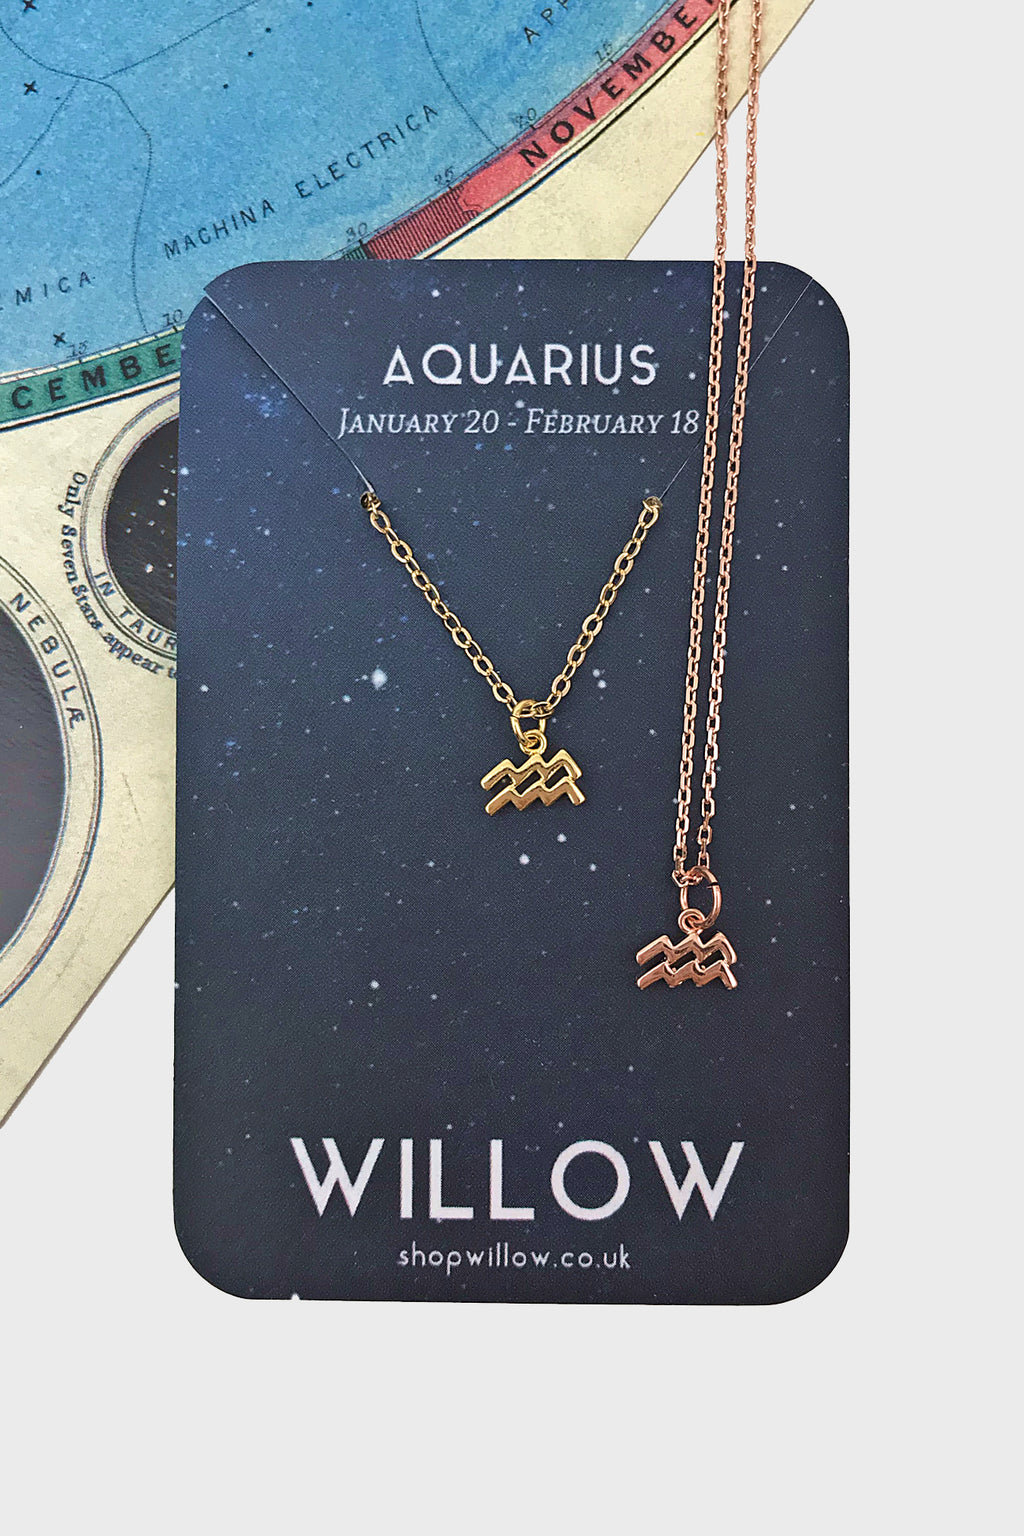 Aquarius mini symbol necklace